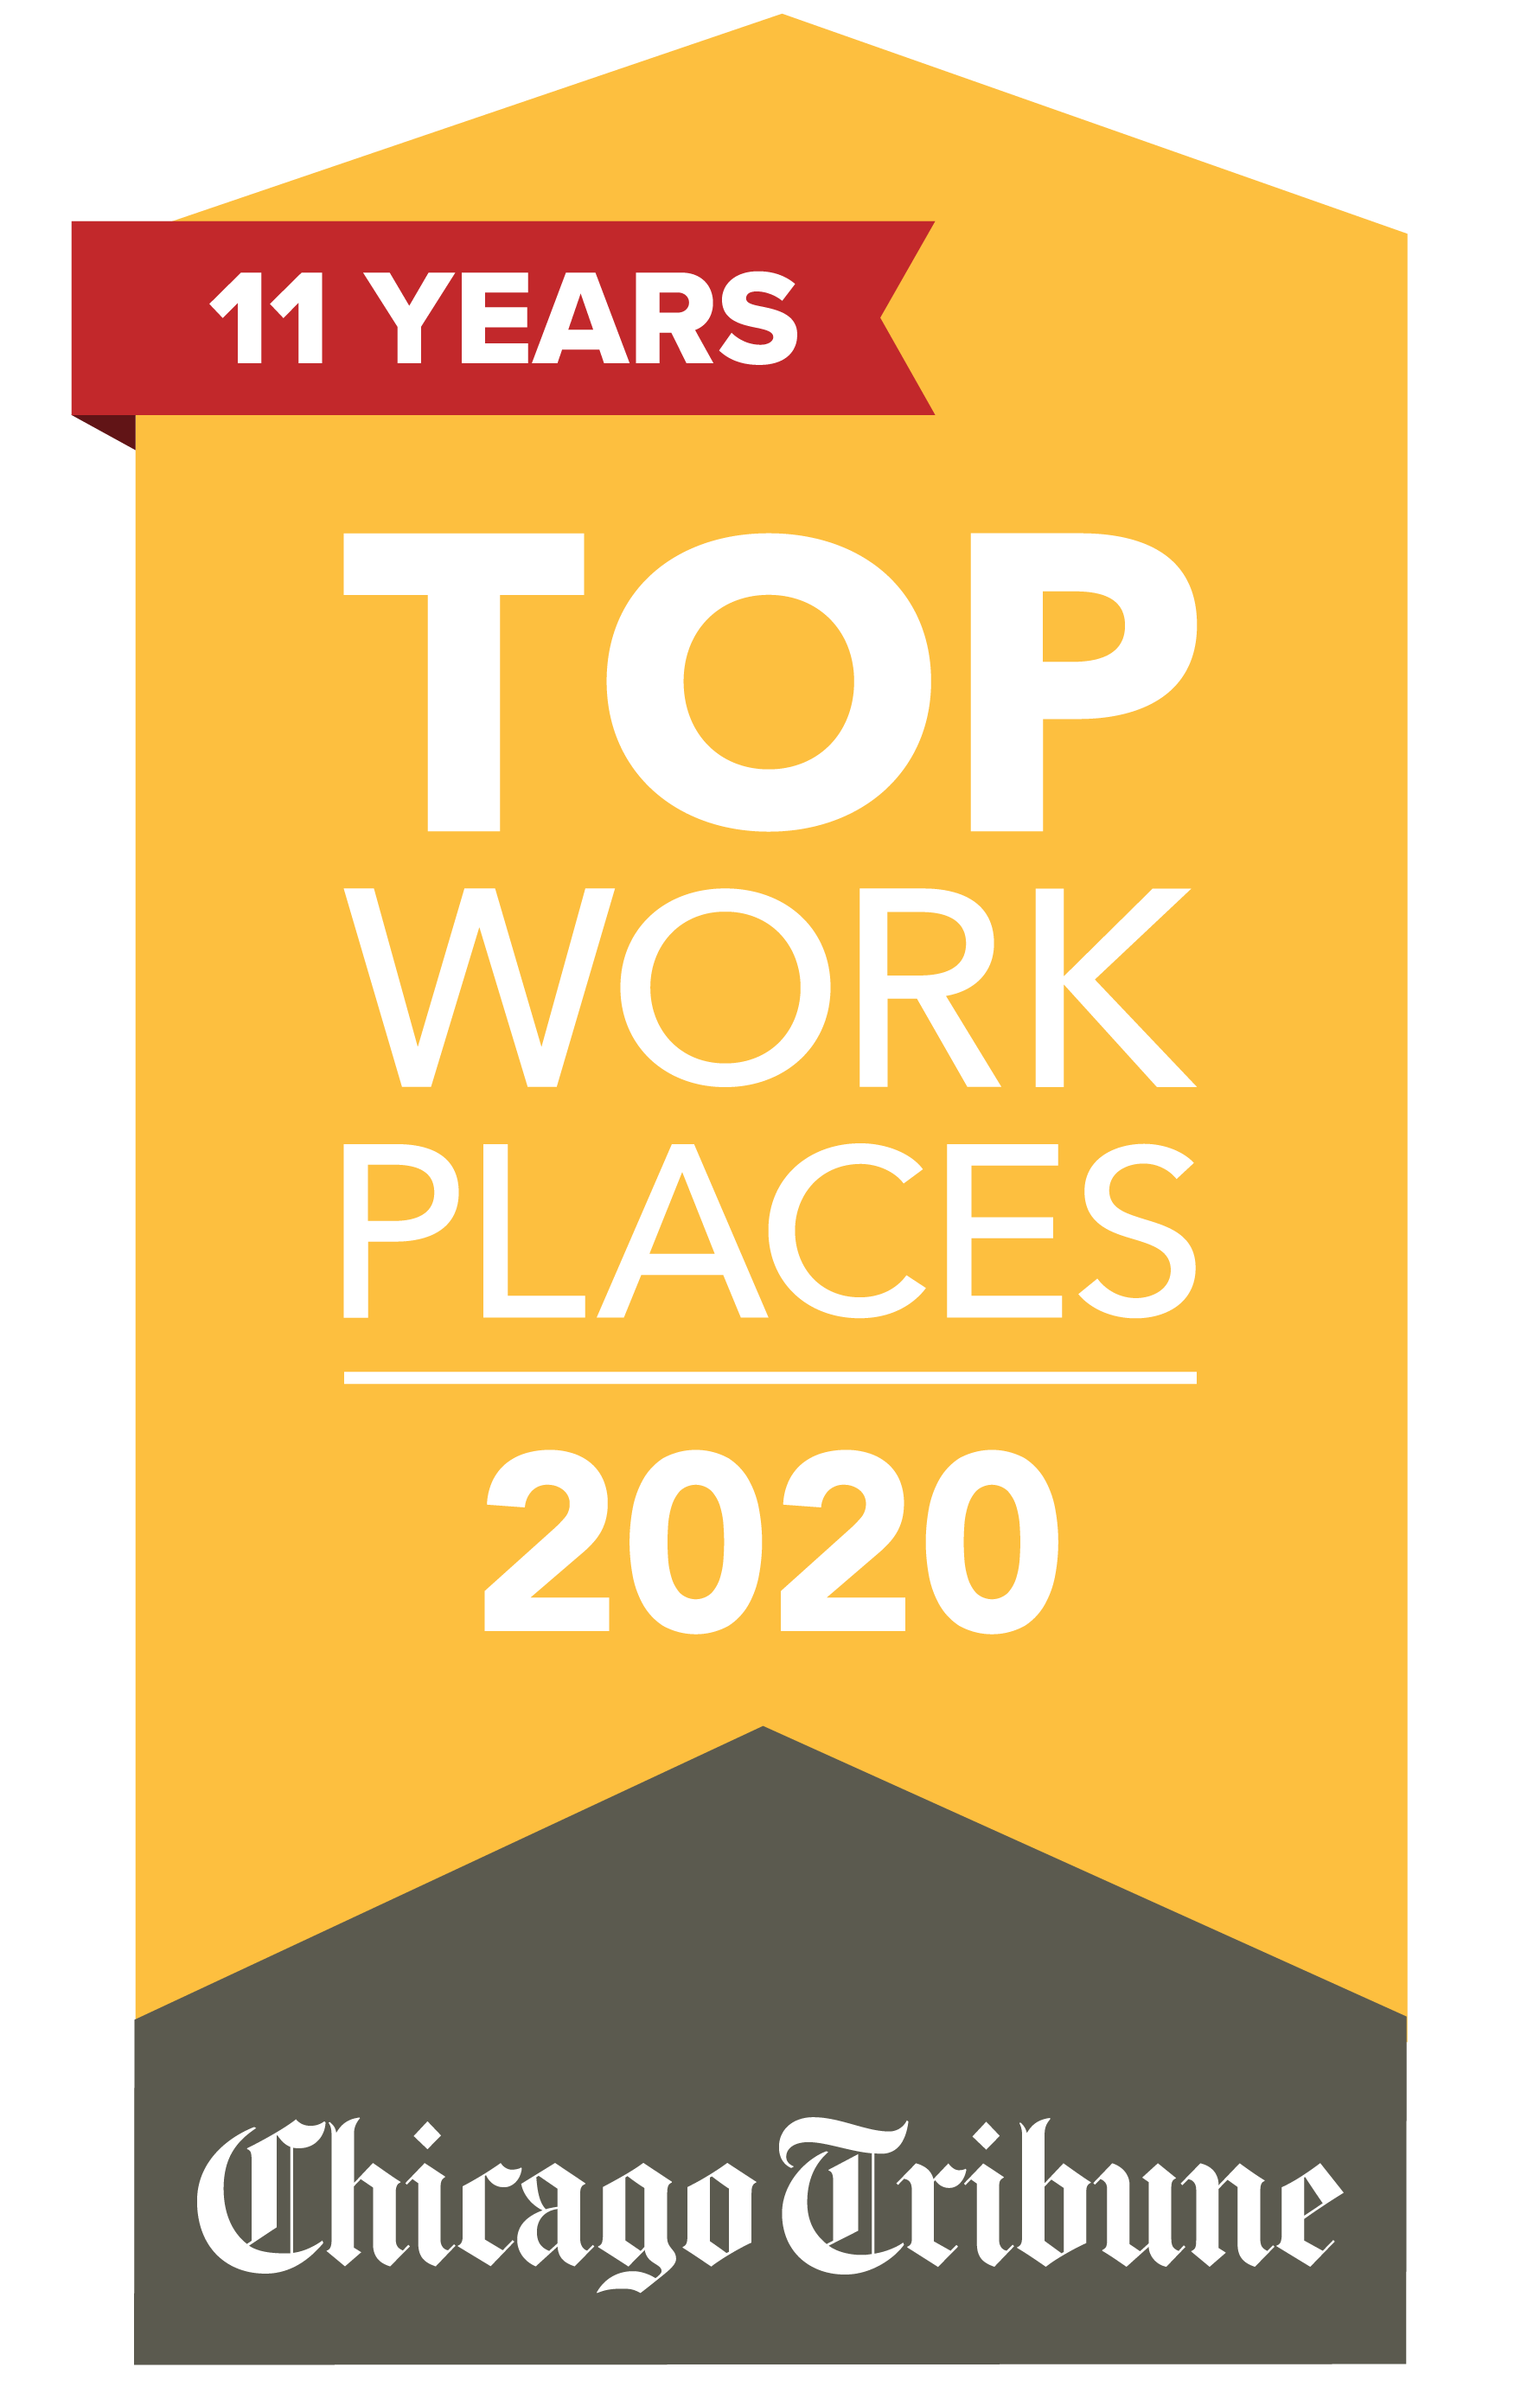 Lou Malnati's Top Workplace 2020